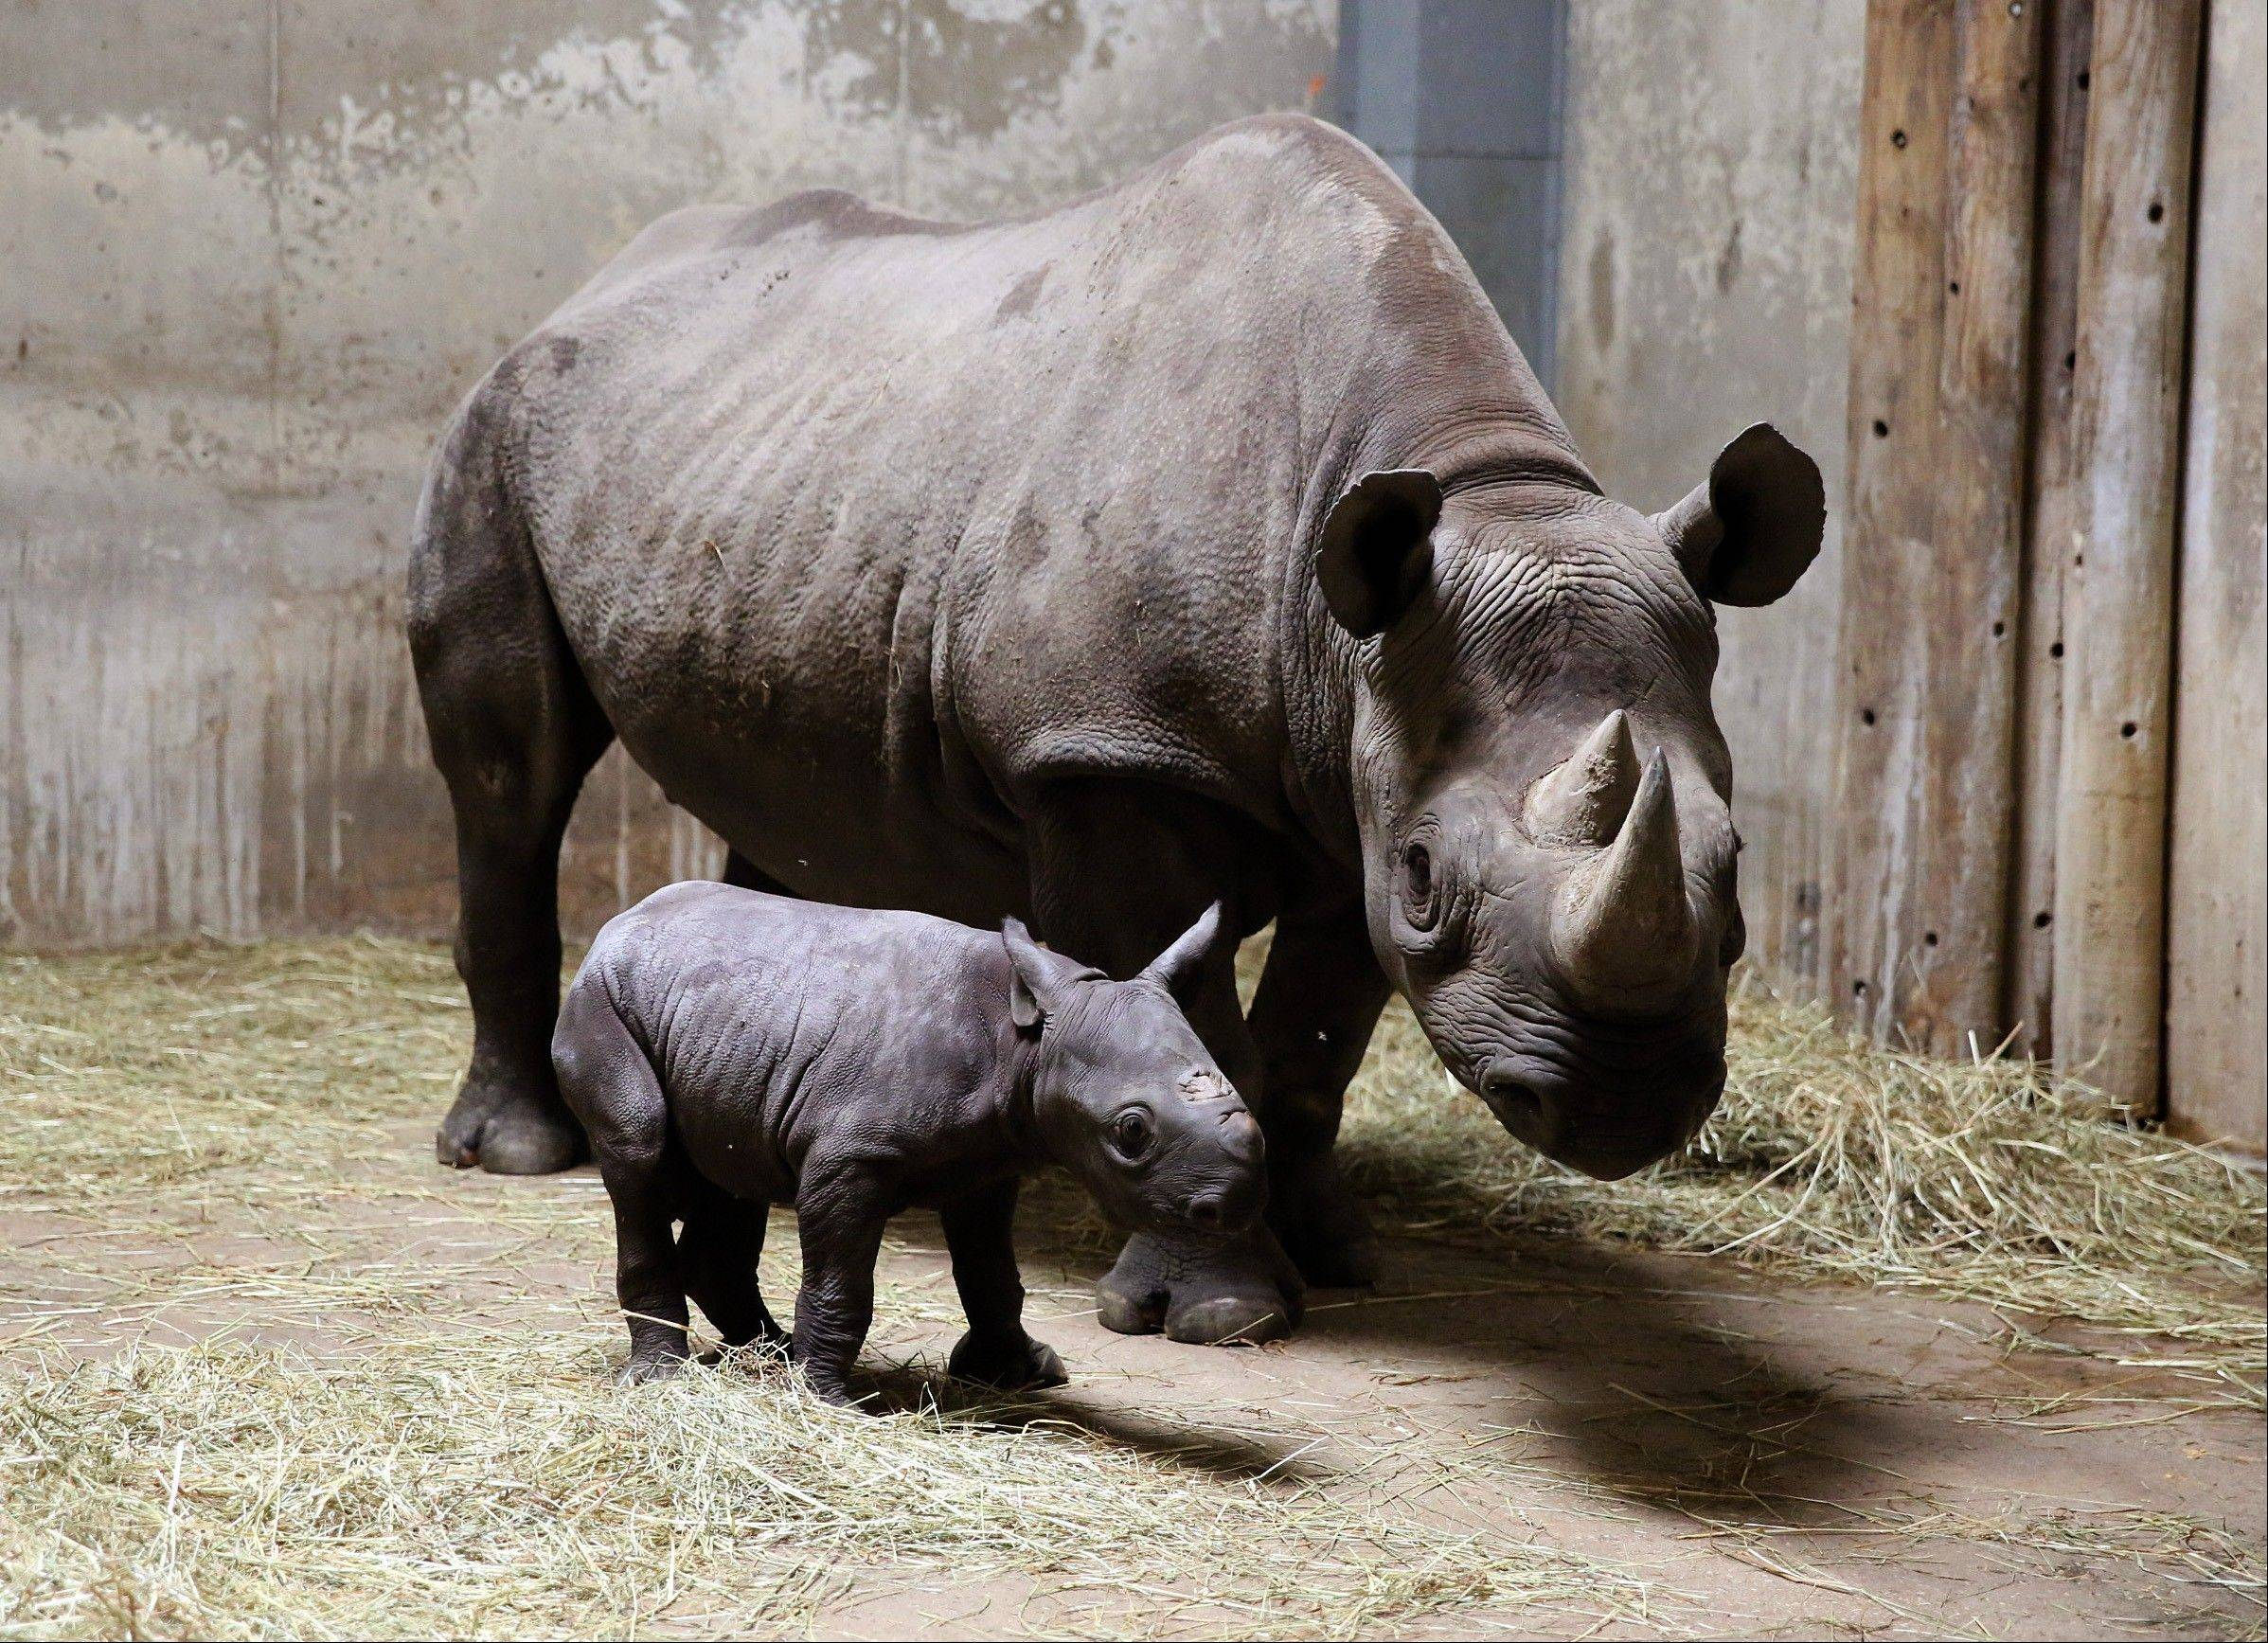 An Eastern black rhinoceros calf walks Wednesday with its mother, 8-year-old Kapuki, at the Lincoln Park Zoo in Chicago.